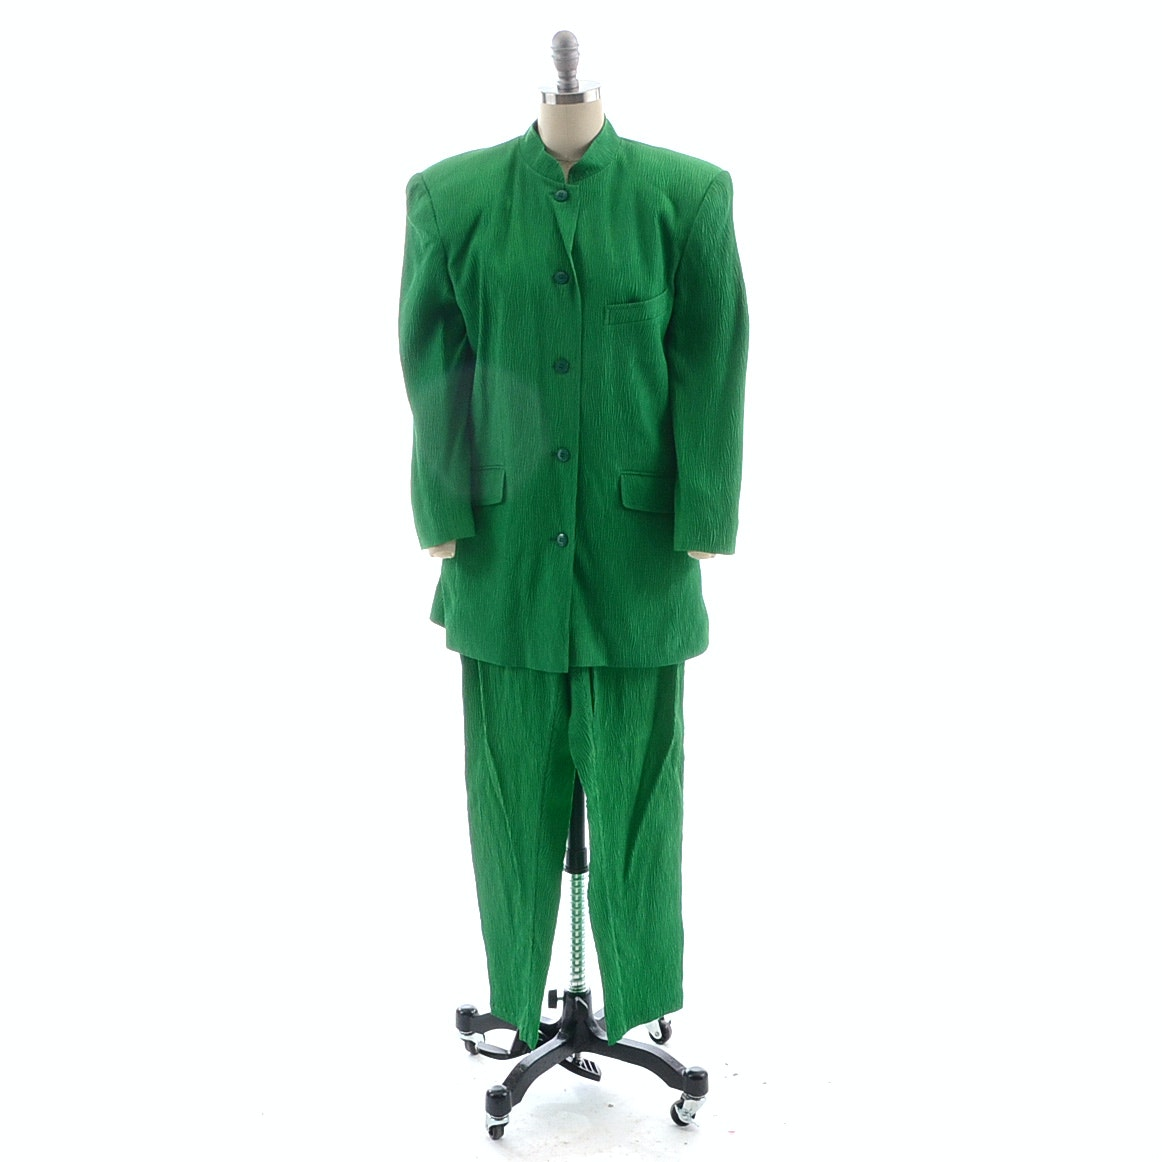 1980s Kenzo of Paris Crystal Pleat Lime Green Silk Pant Suit